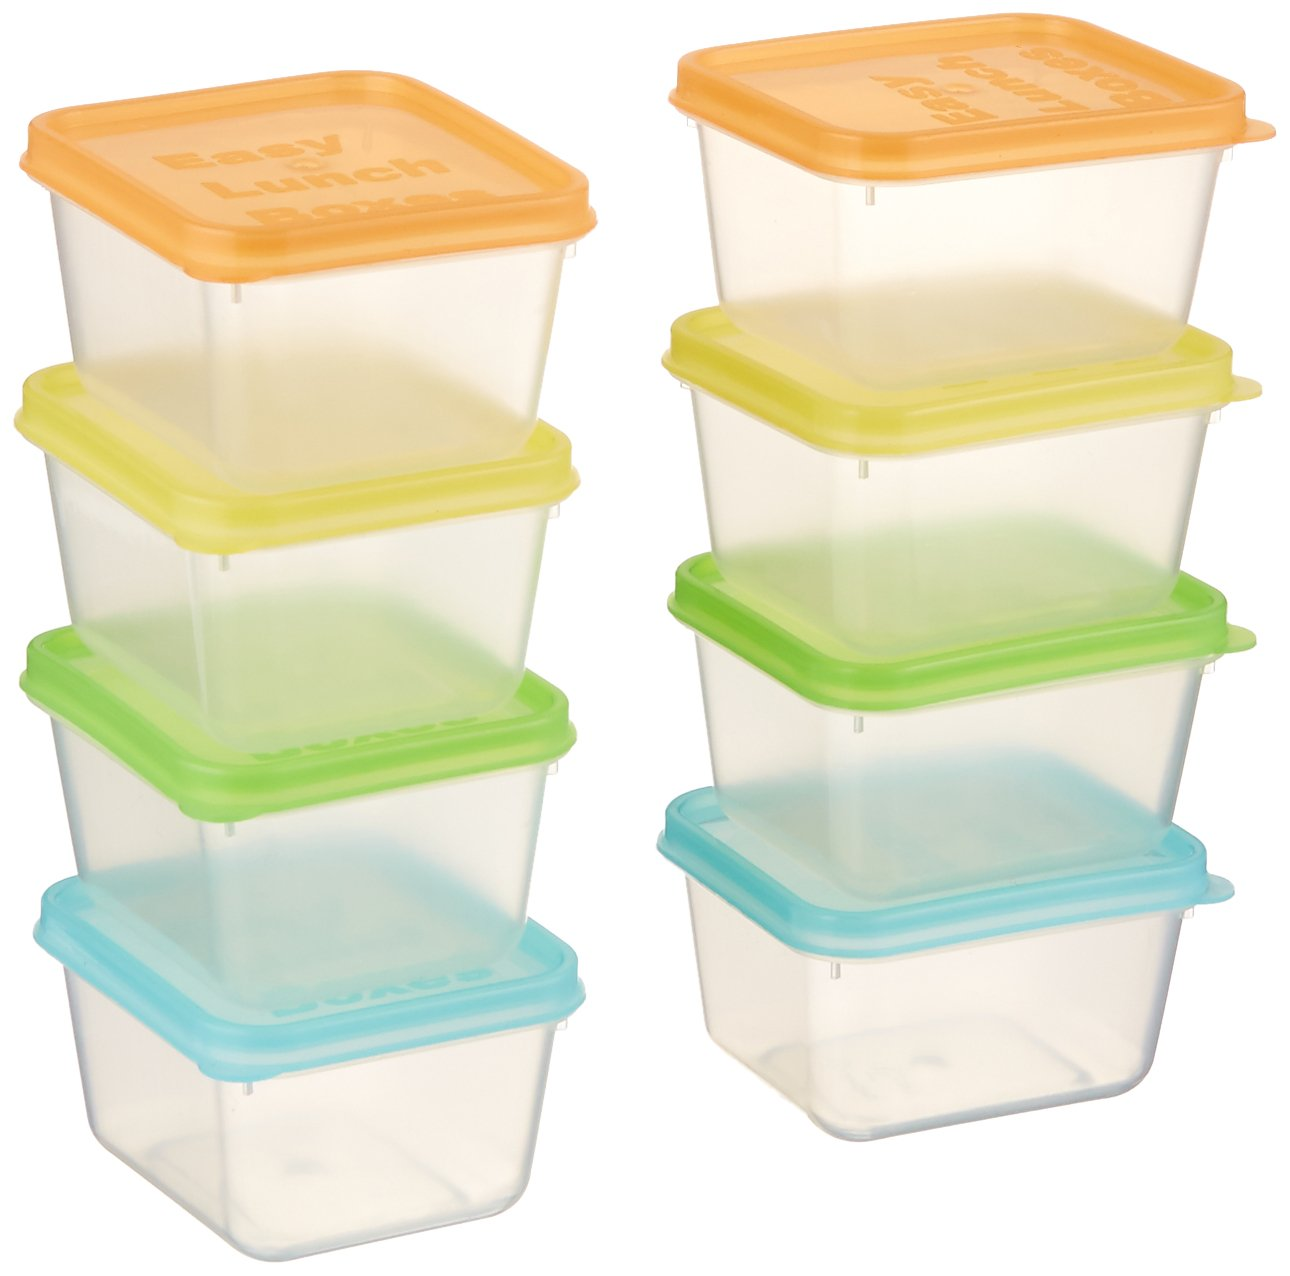 EasyLunchboxes Mini Dippers Small Dip, Condiment, or Sauce Containers, Leak-Resistant, Set of 8 ELB3-DIPPERS